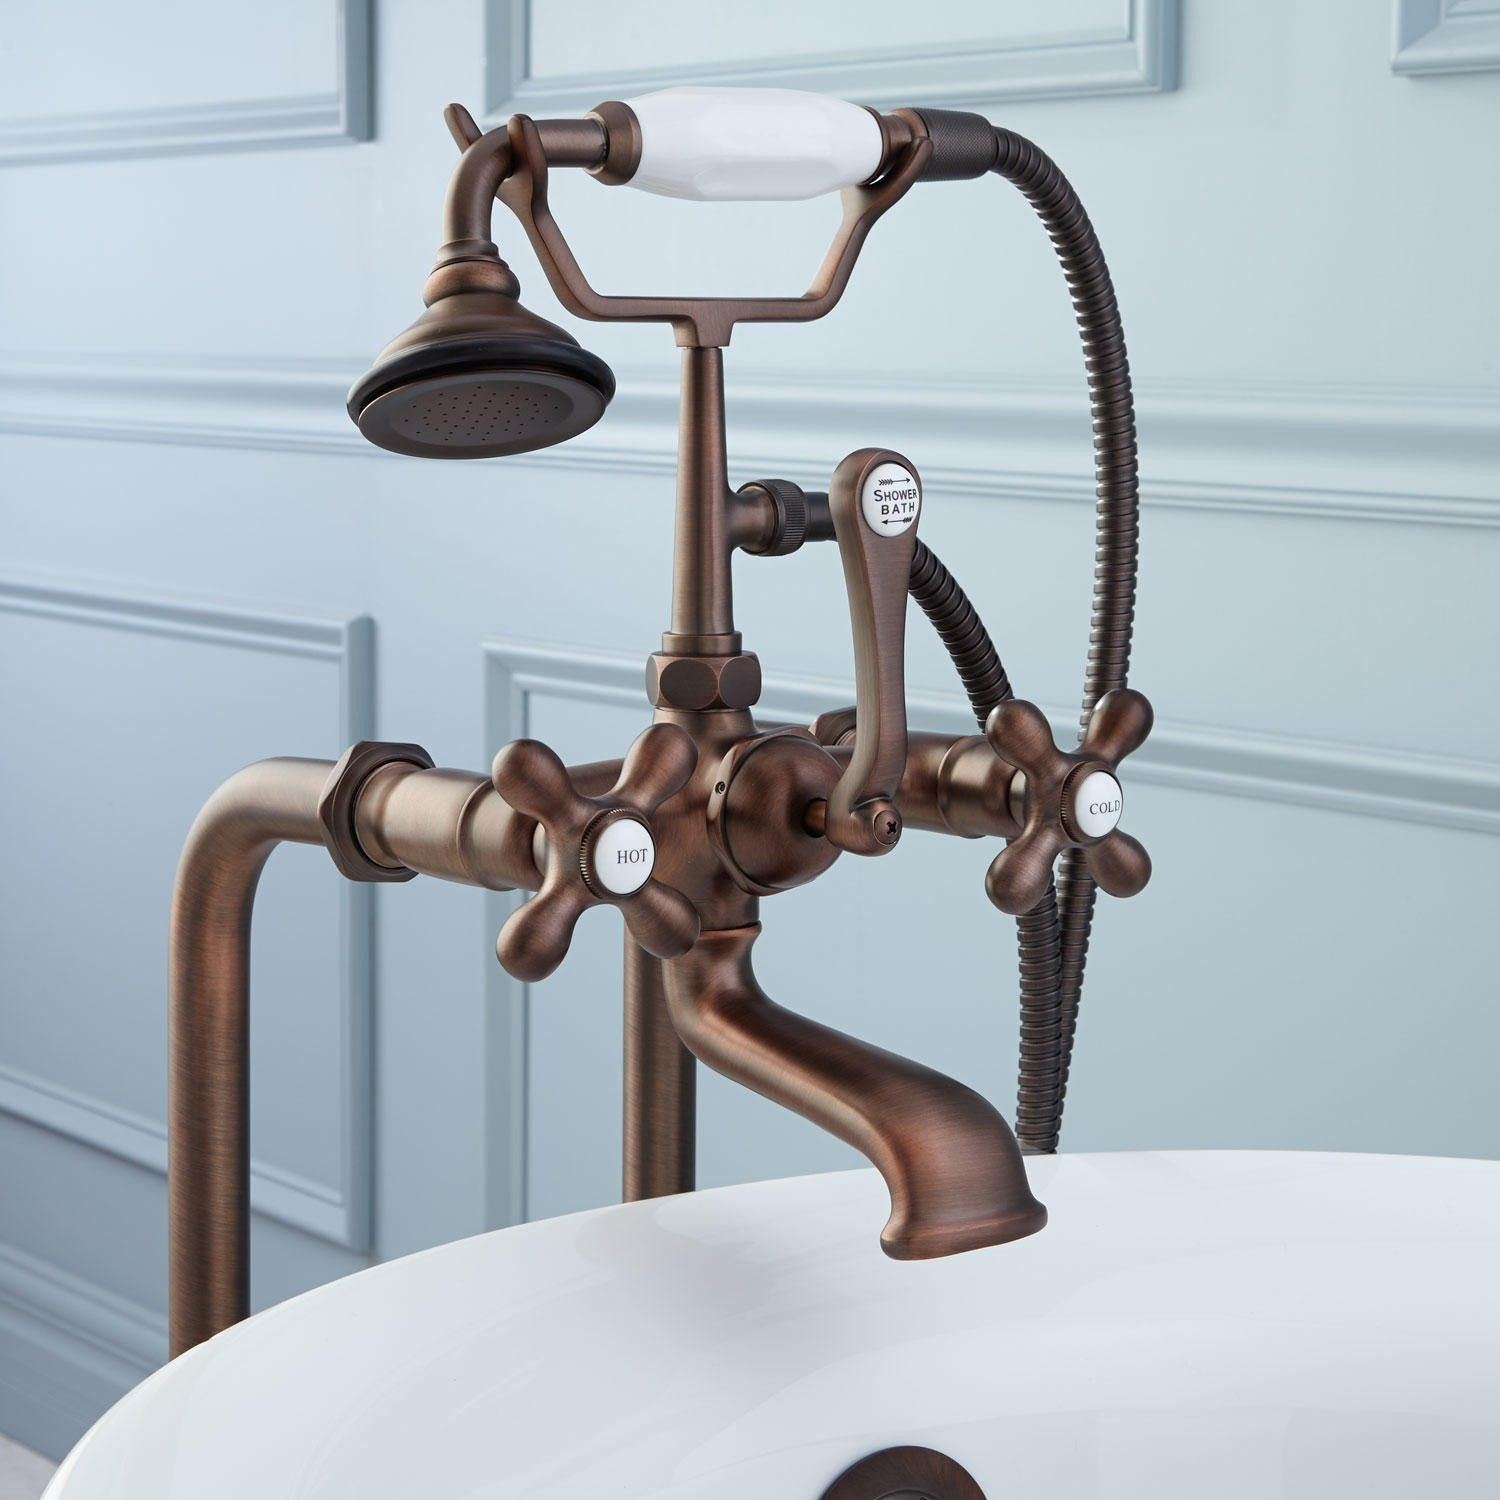 Fabulous Freestanding Telephone Clawfoot Tub Bronze Faucet And Bathroom Hardware